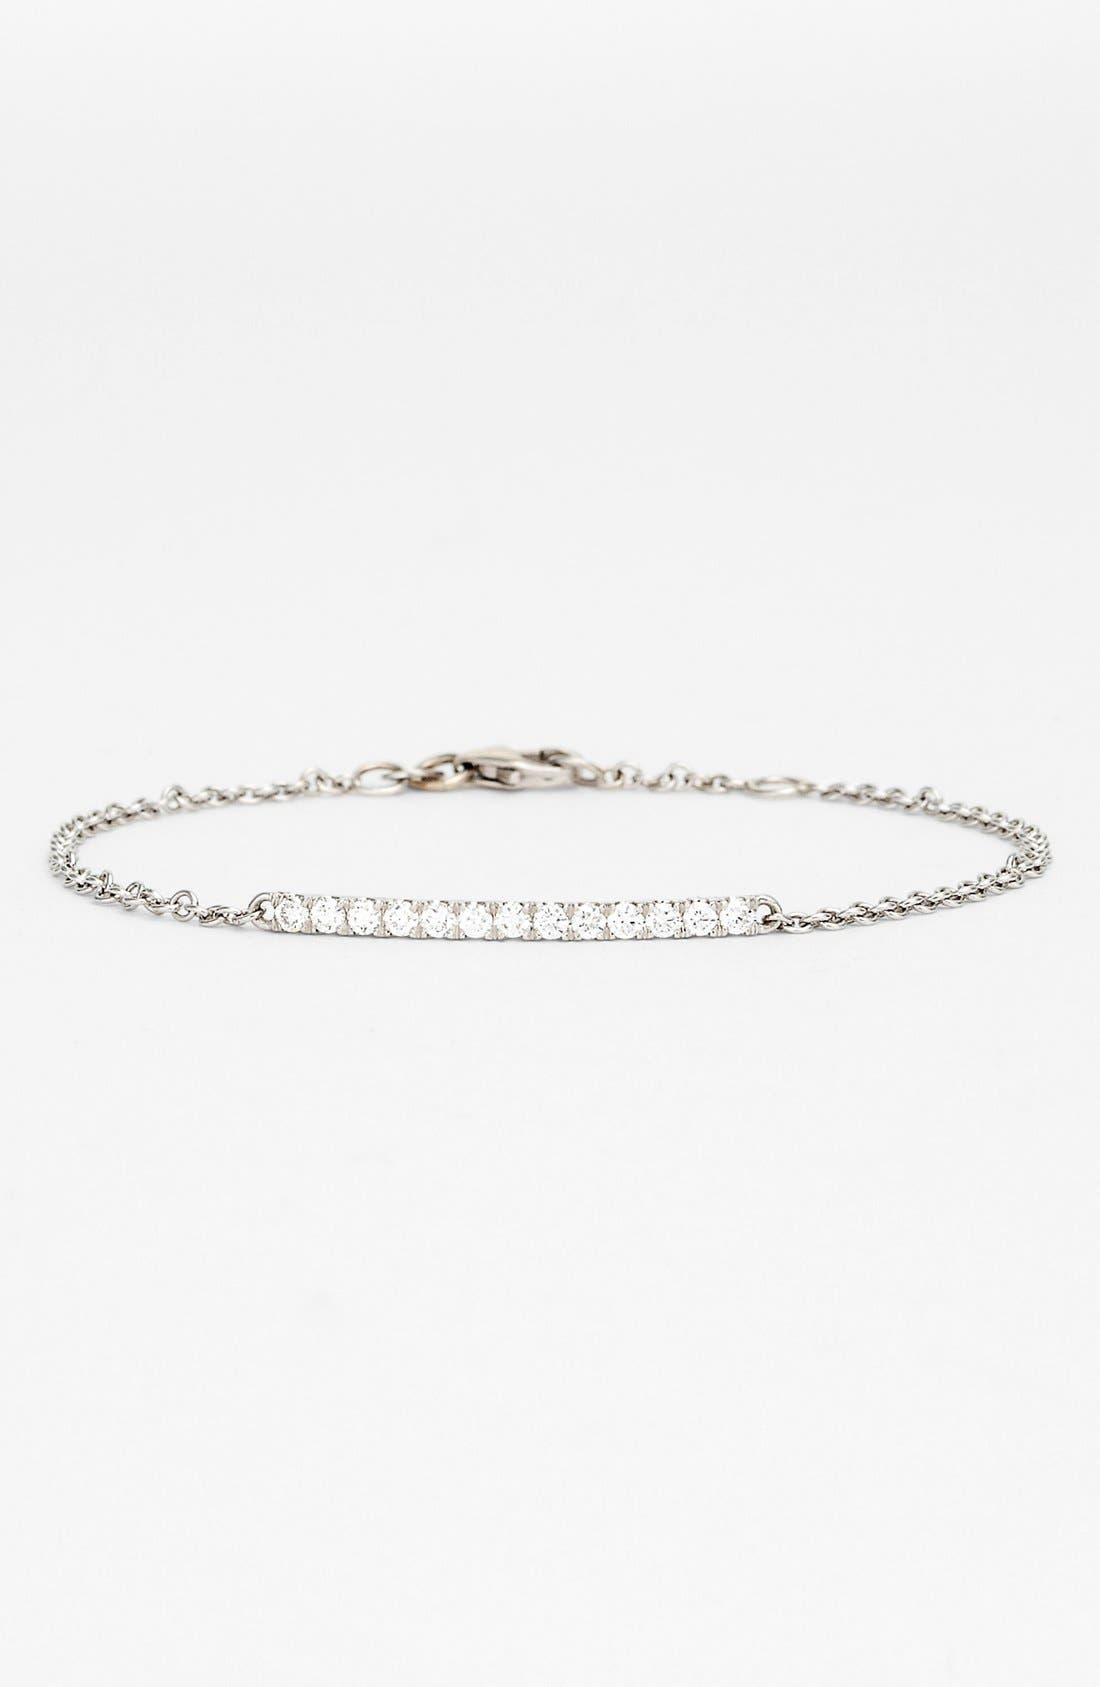 Main Image - Bony Levy 'Stick' Pavé Diamond Bar Bracelet (Nordstrom Exclusive)